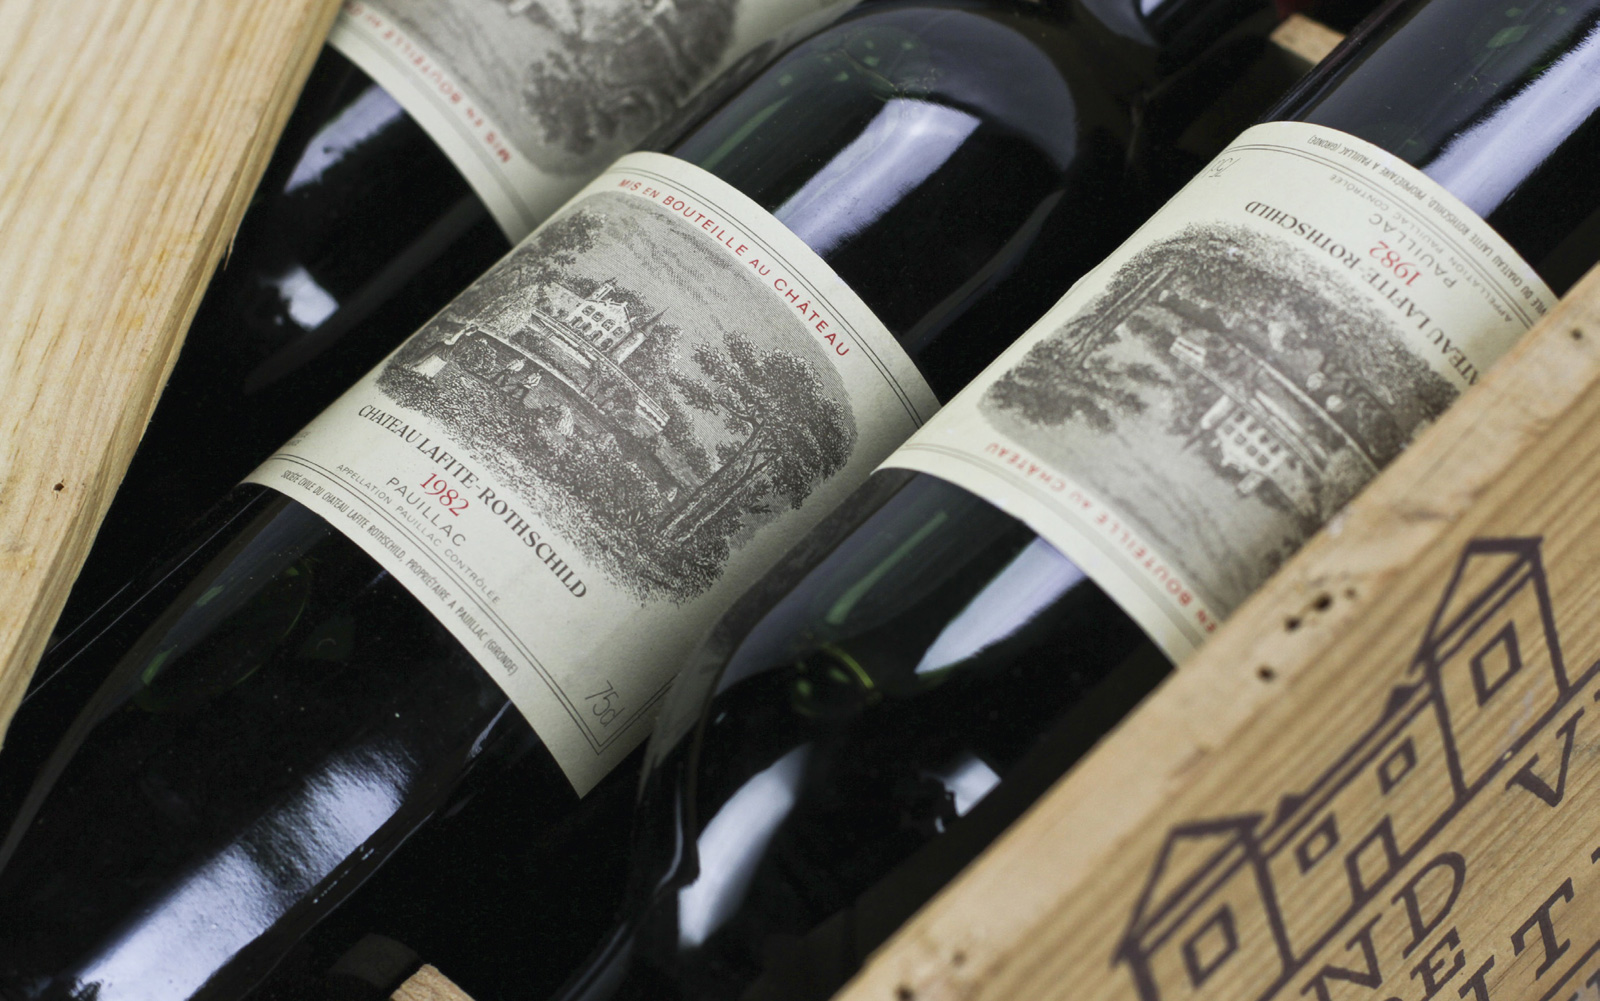 Sotheby&#8217;s Says Hong Kong Spring Wine Auction May Fetch $10 Million